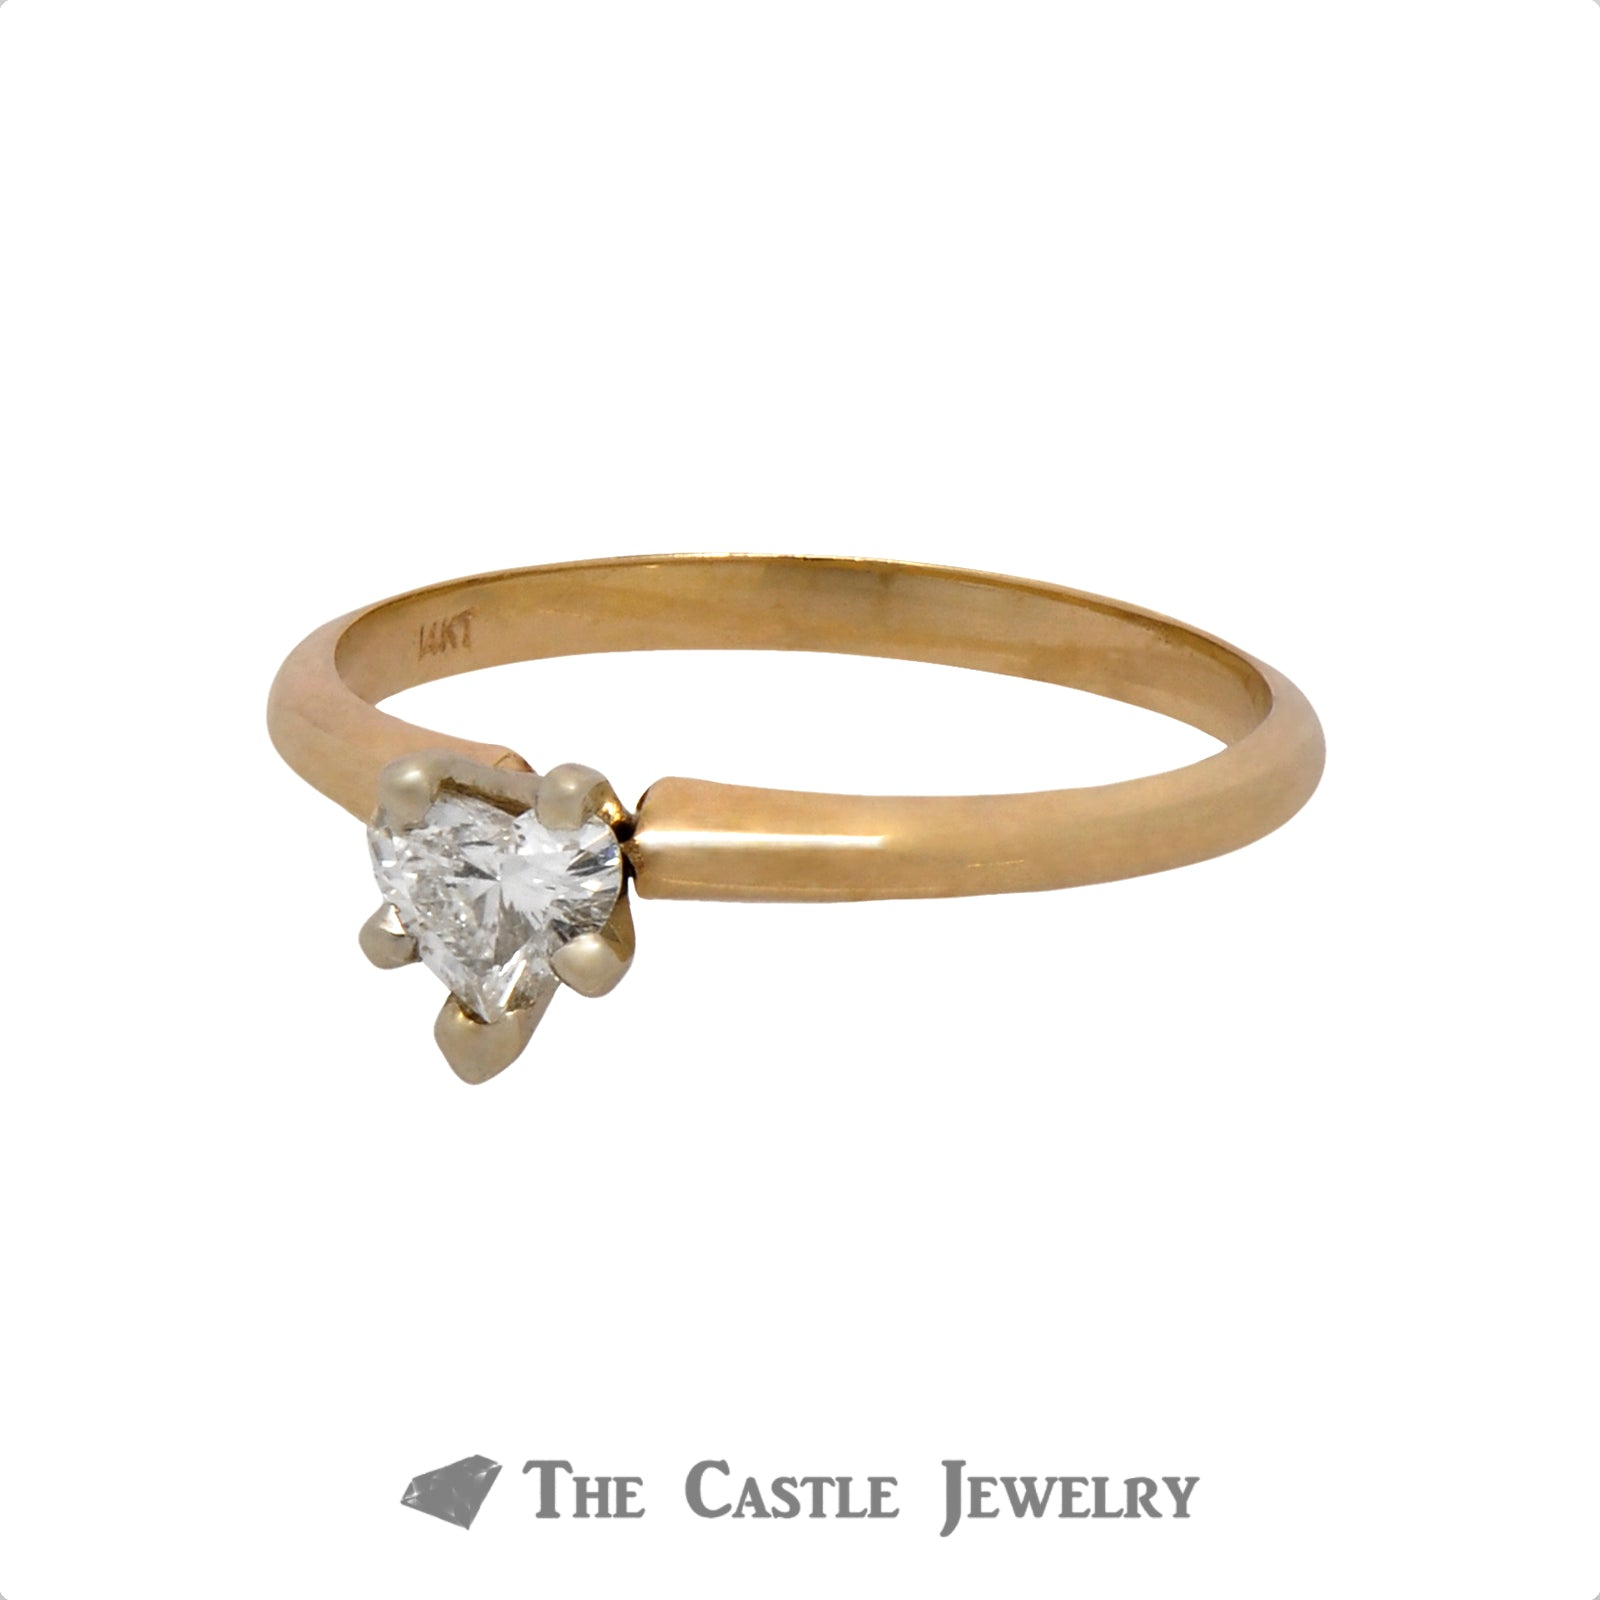 .30ct Heart Cut Diamond Solitaire Engagement Ring in 14k Yellow Gold-2